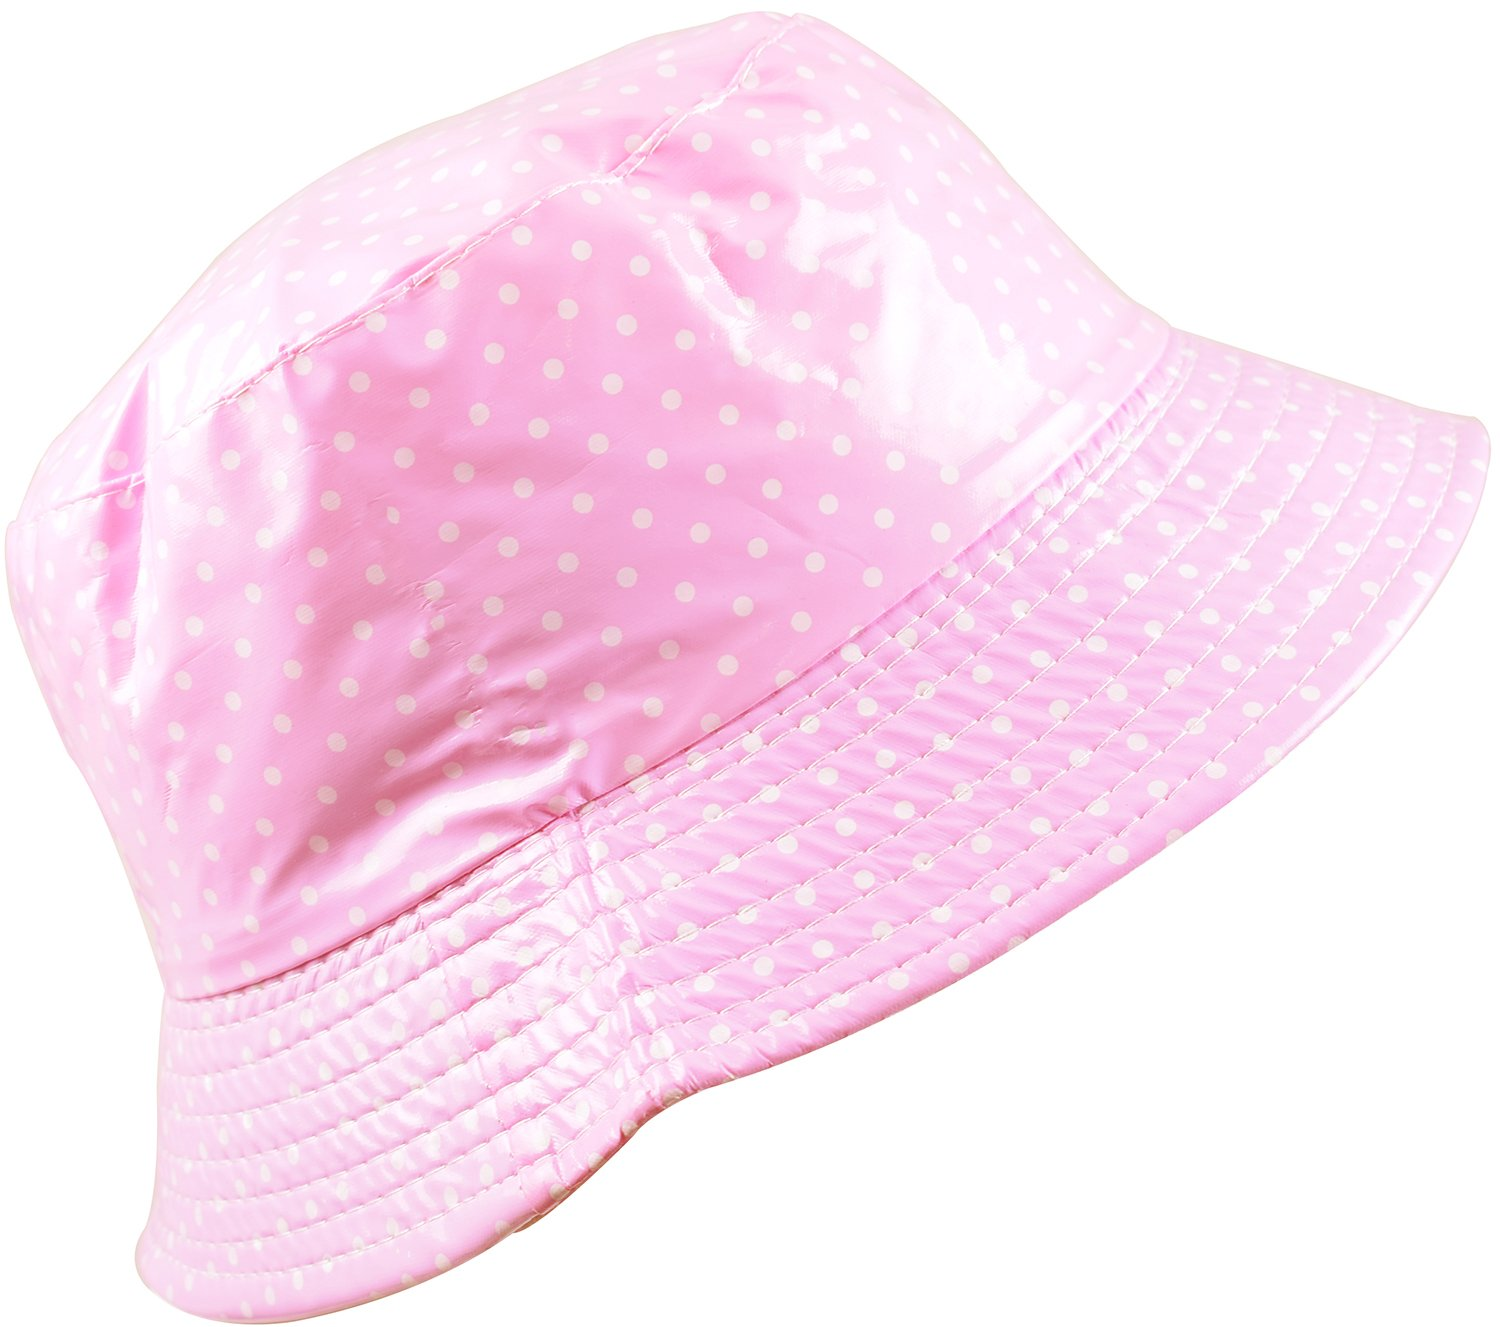 Galleon - YJDS Women s Rain Hat Waterproof Wide Brim Packable Dots Pink df9af8051e29